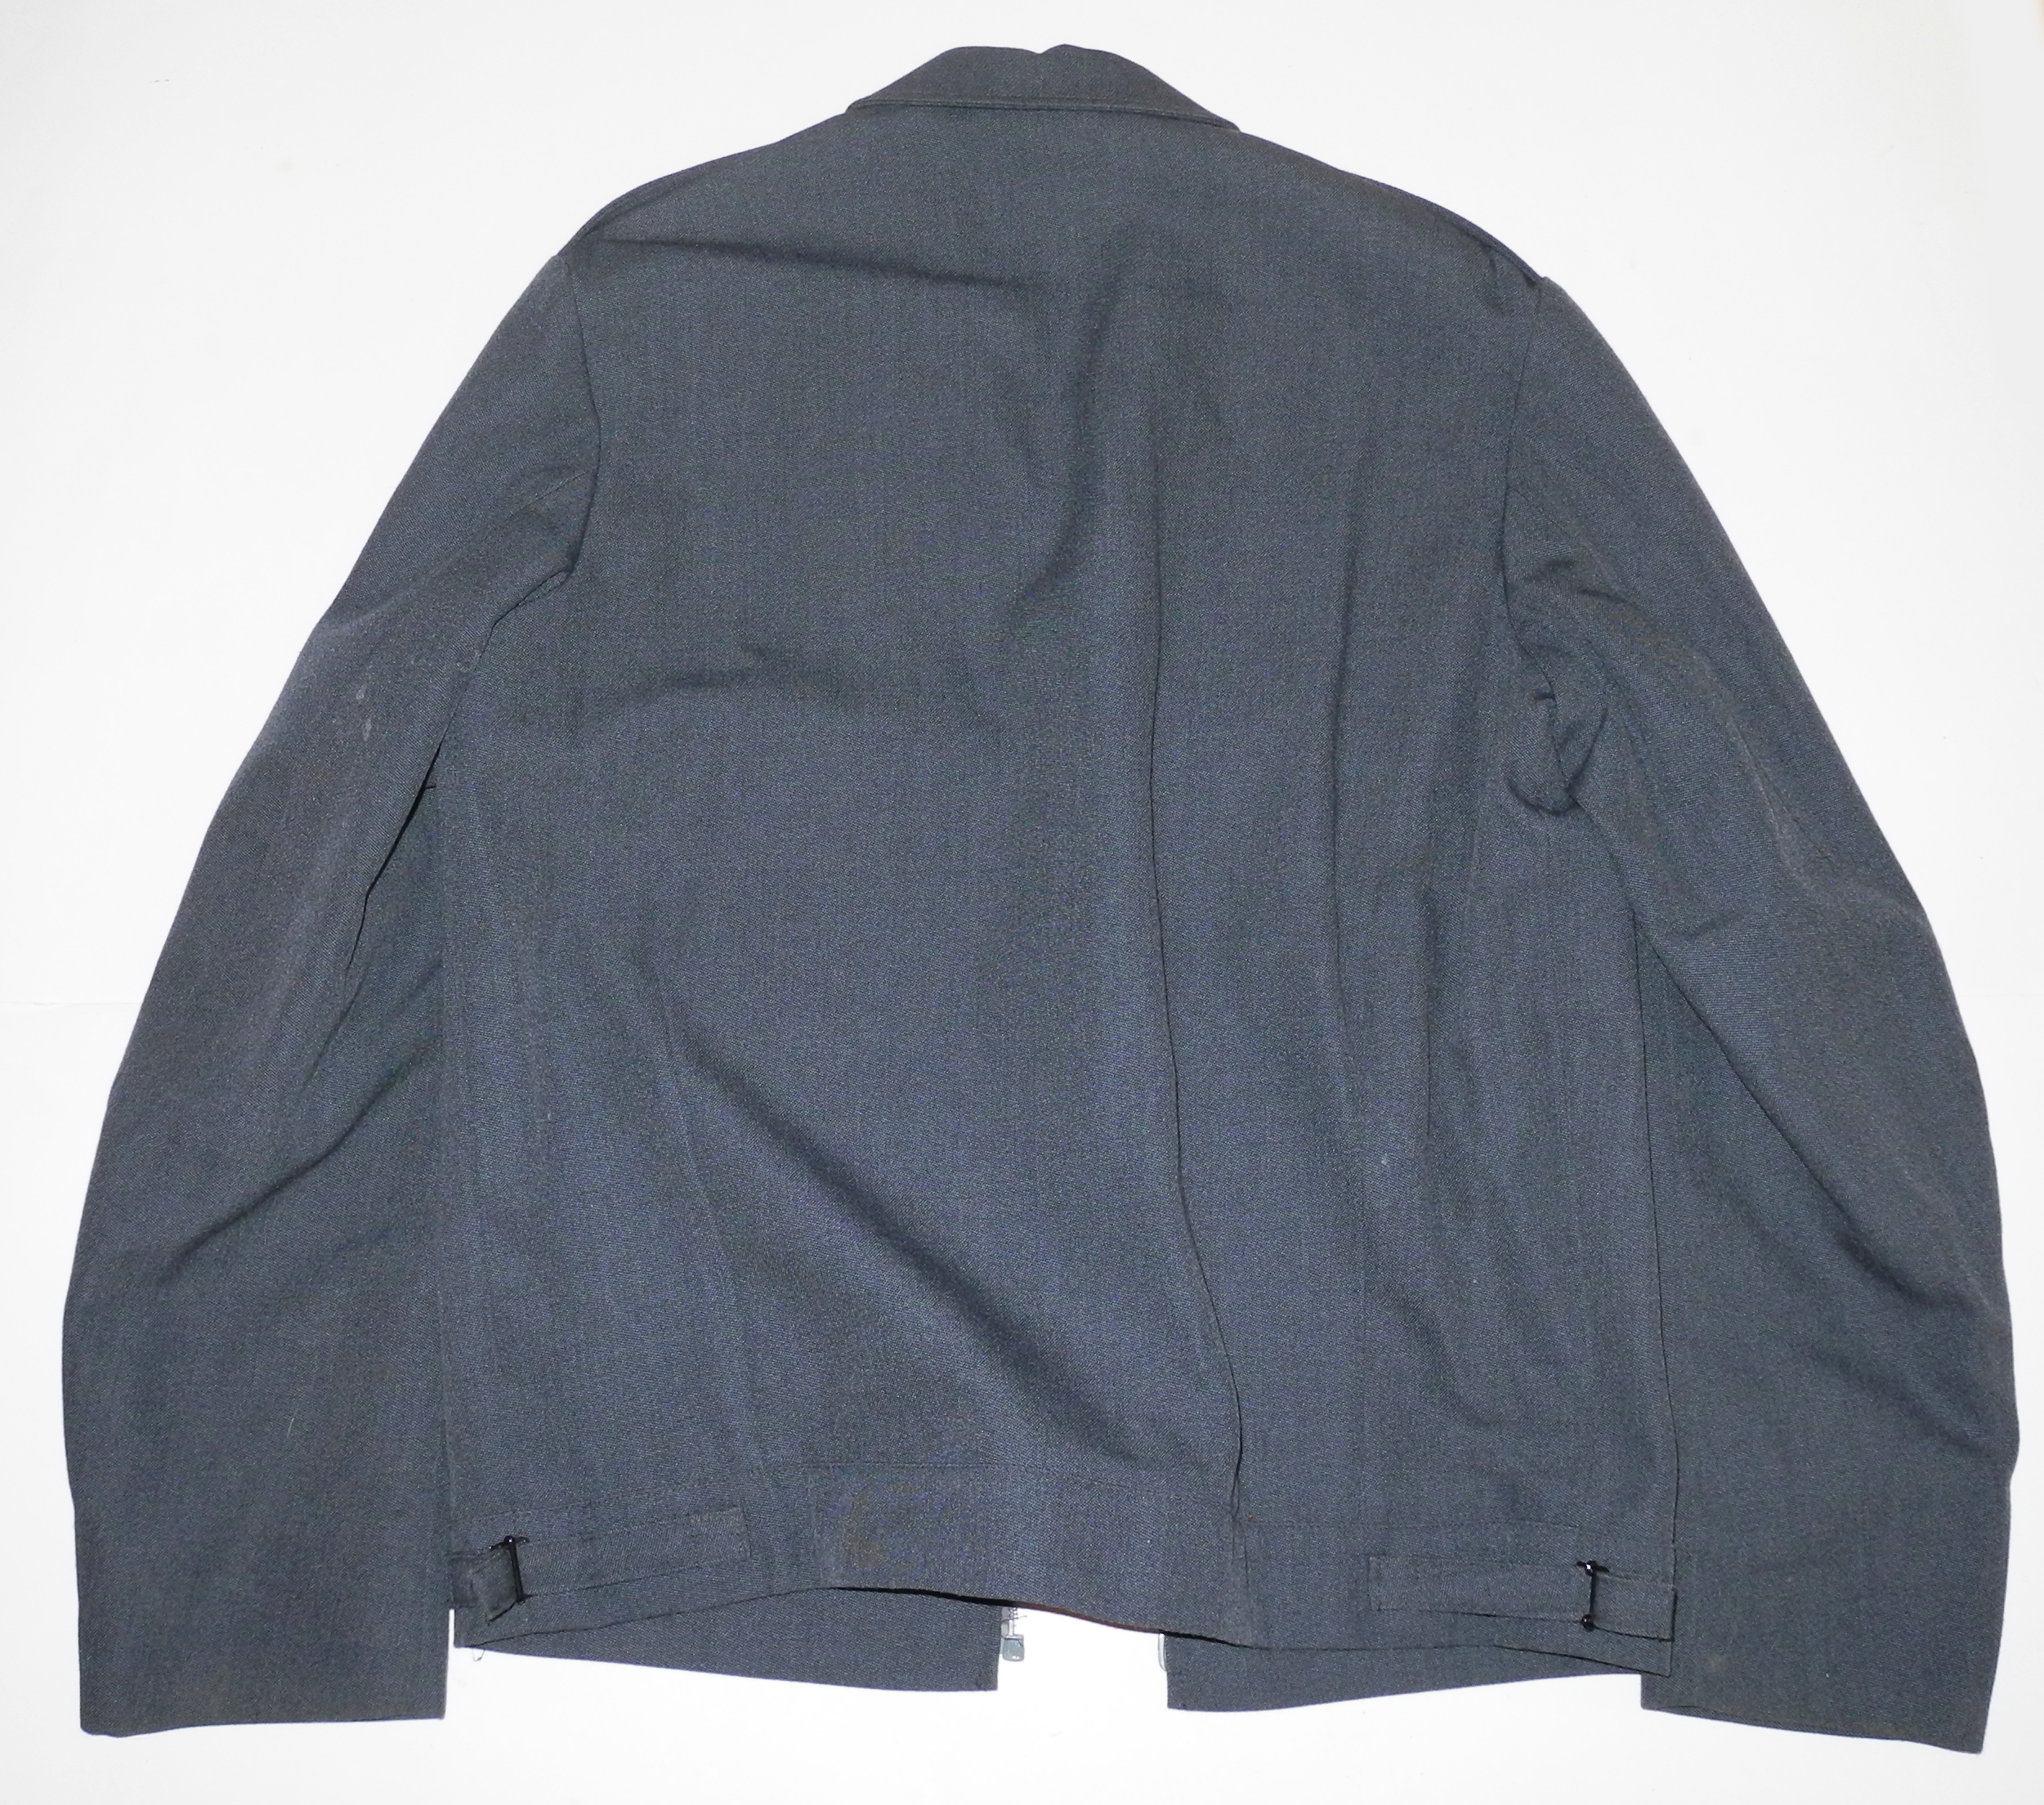 RAF 1972 pattern other ranks short jacket3